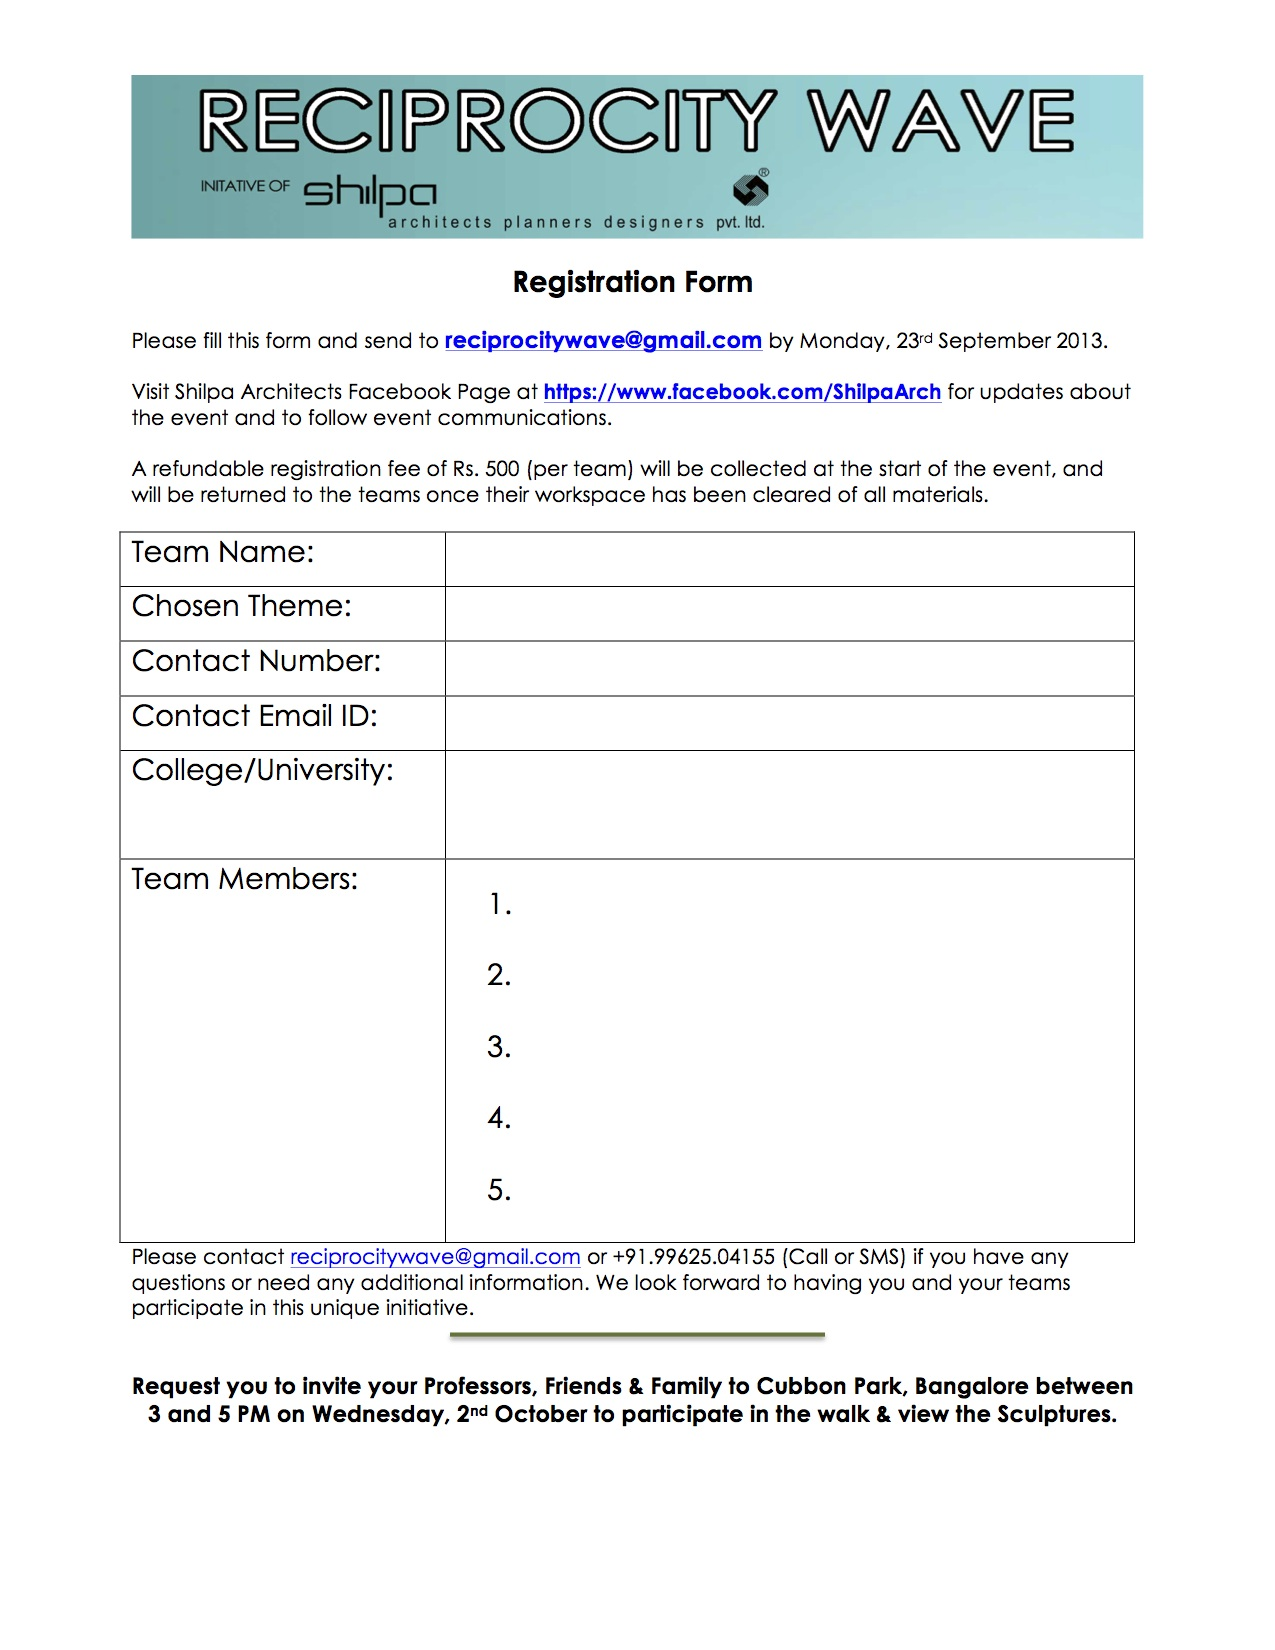 Reciprocity Wave Bangalore - Registration Forms